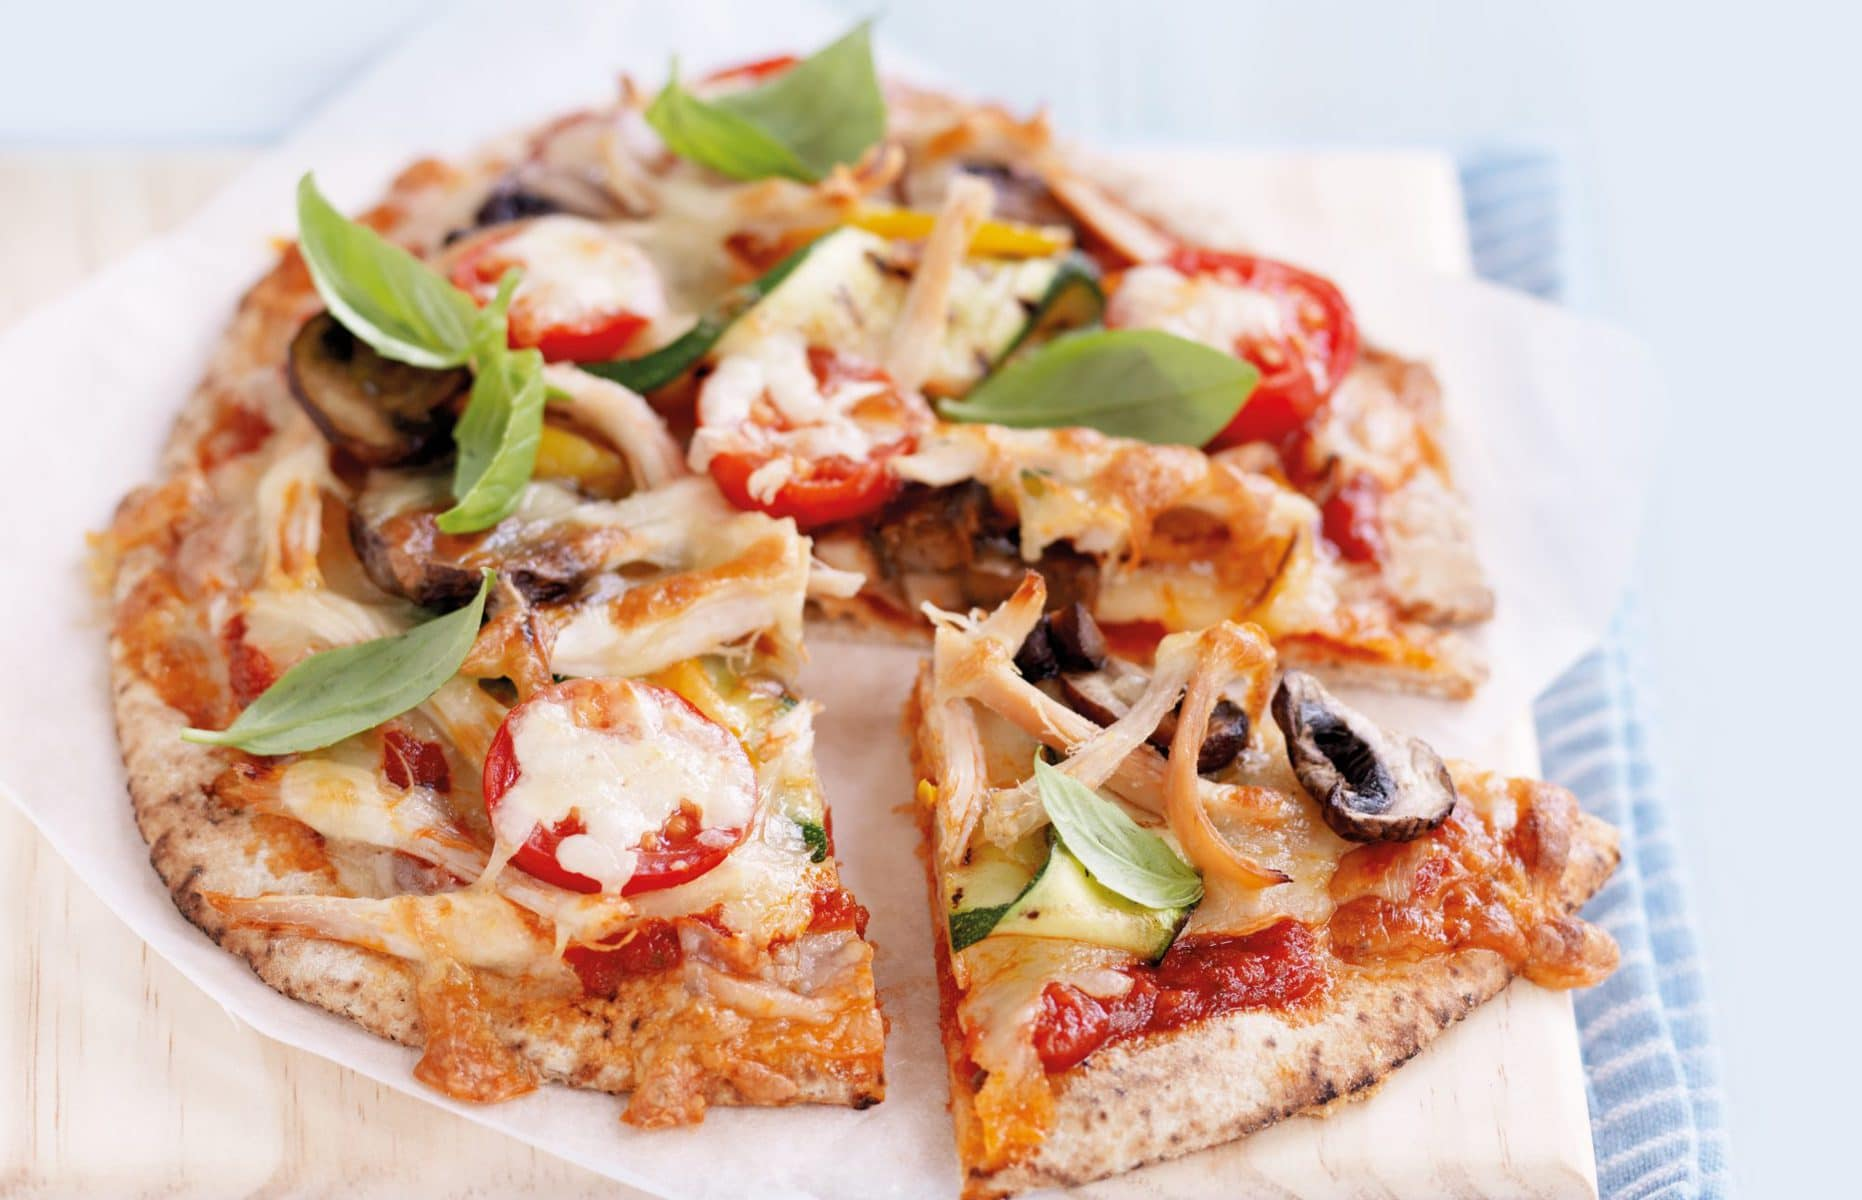 Pita bread pizza with chicken and grilled veges